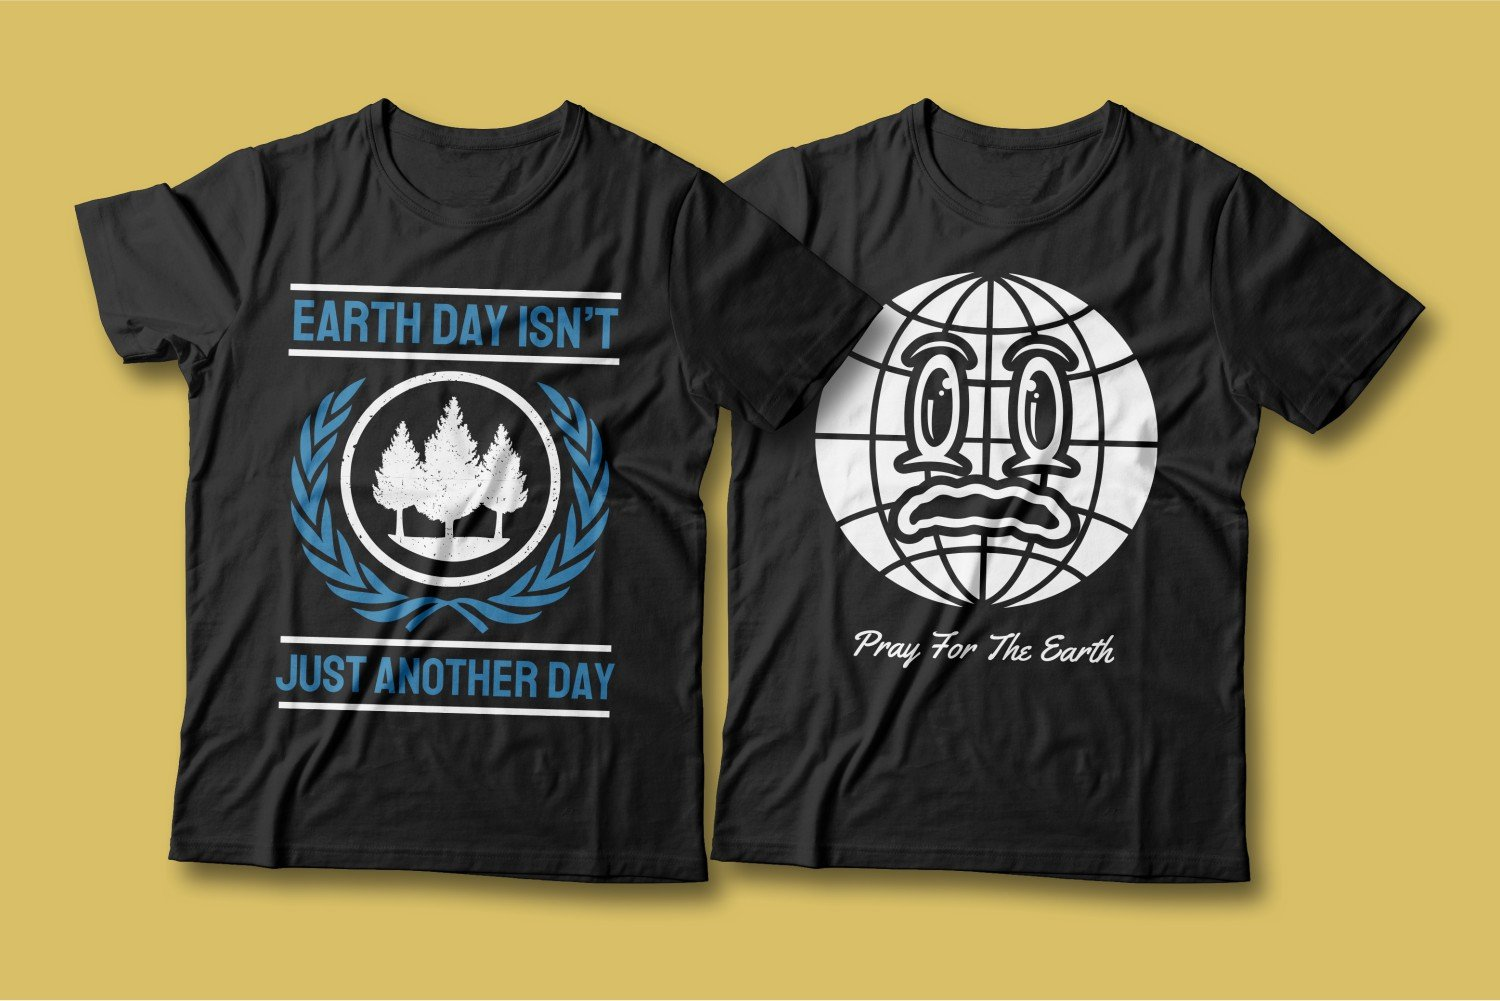 Two T-shirts - both black with appeals to protect nature.